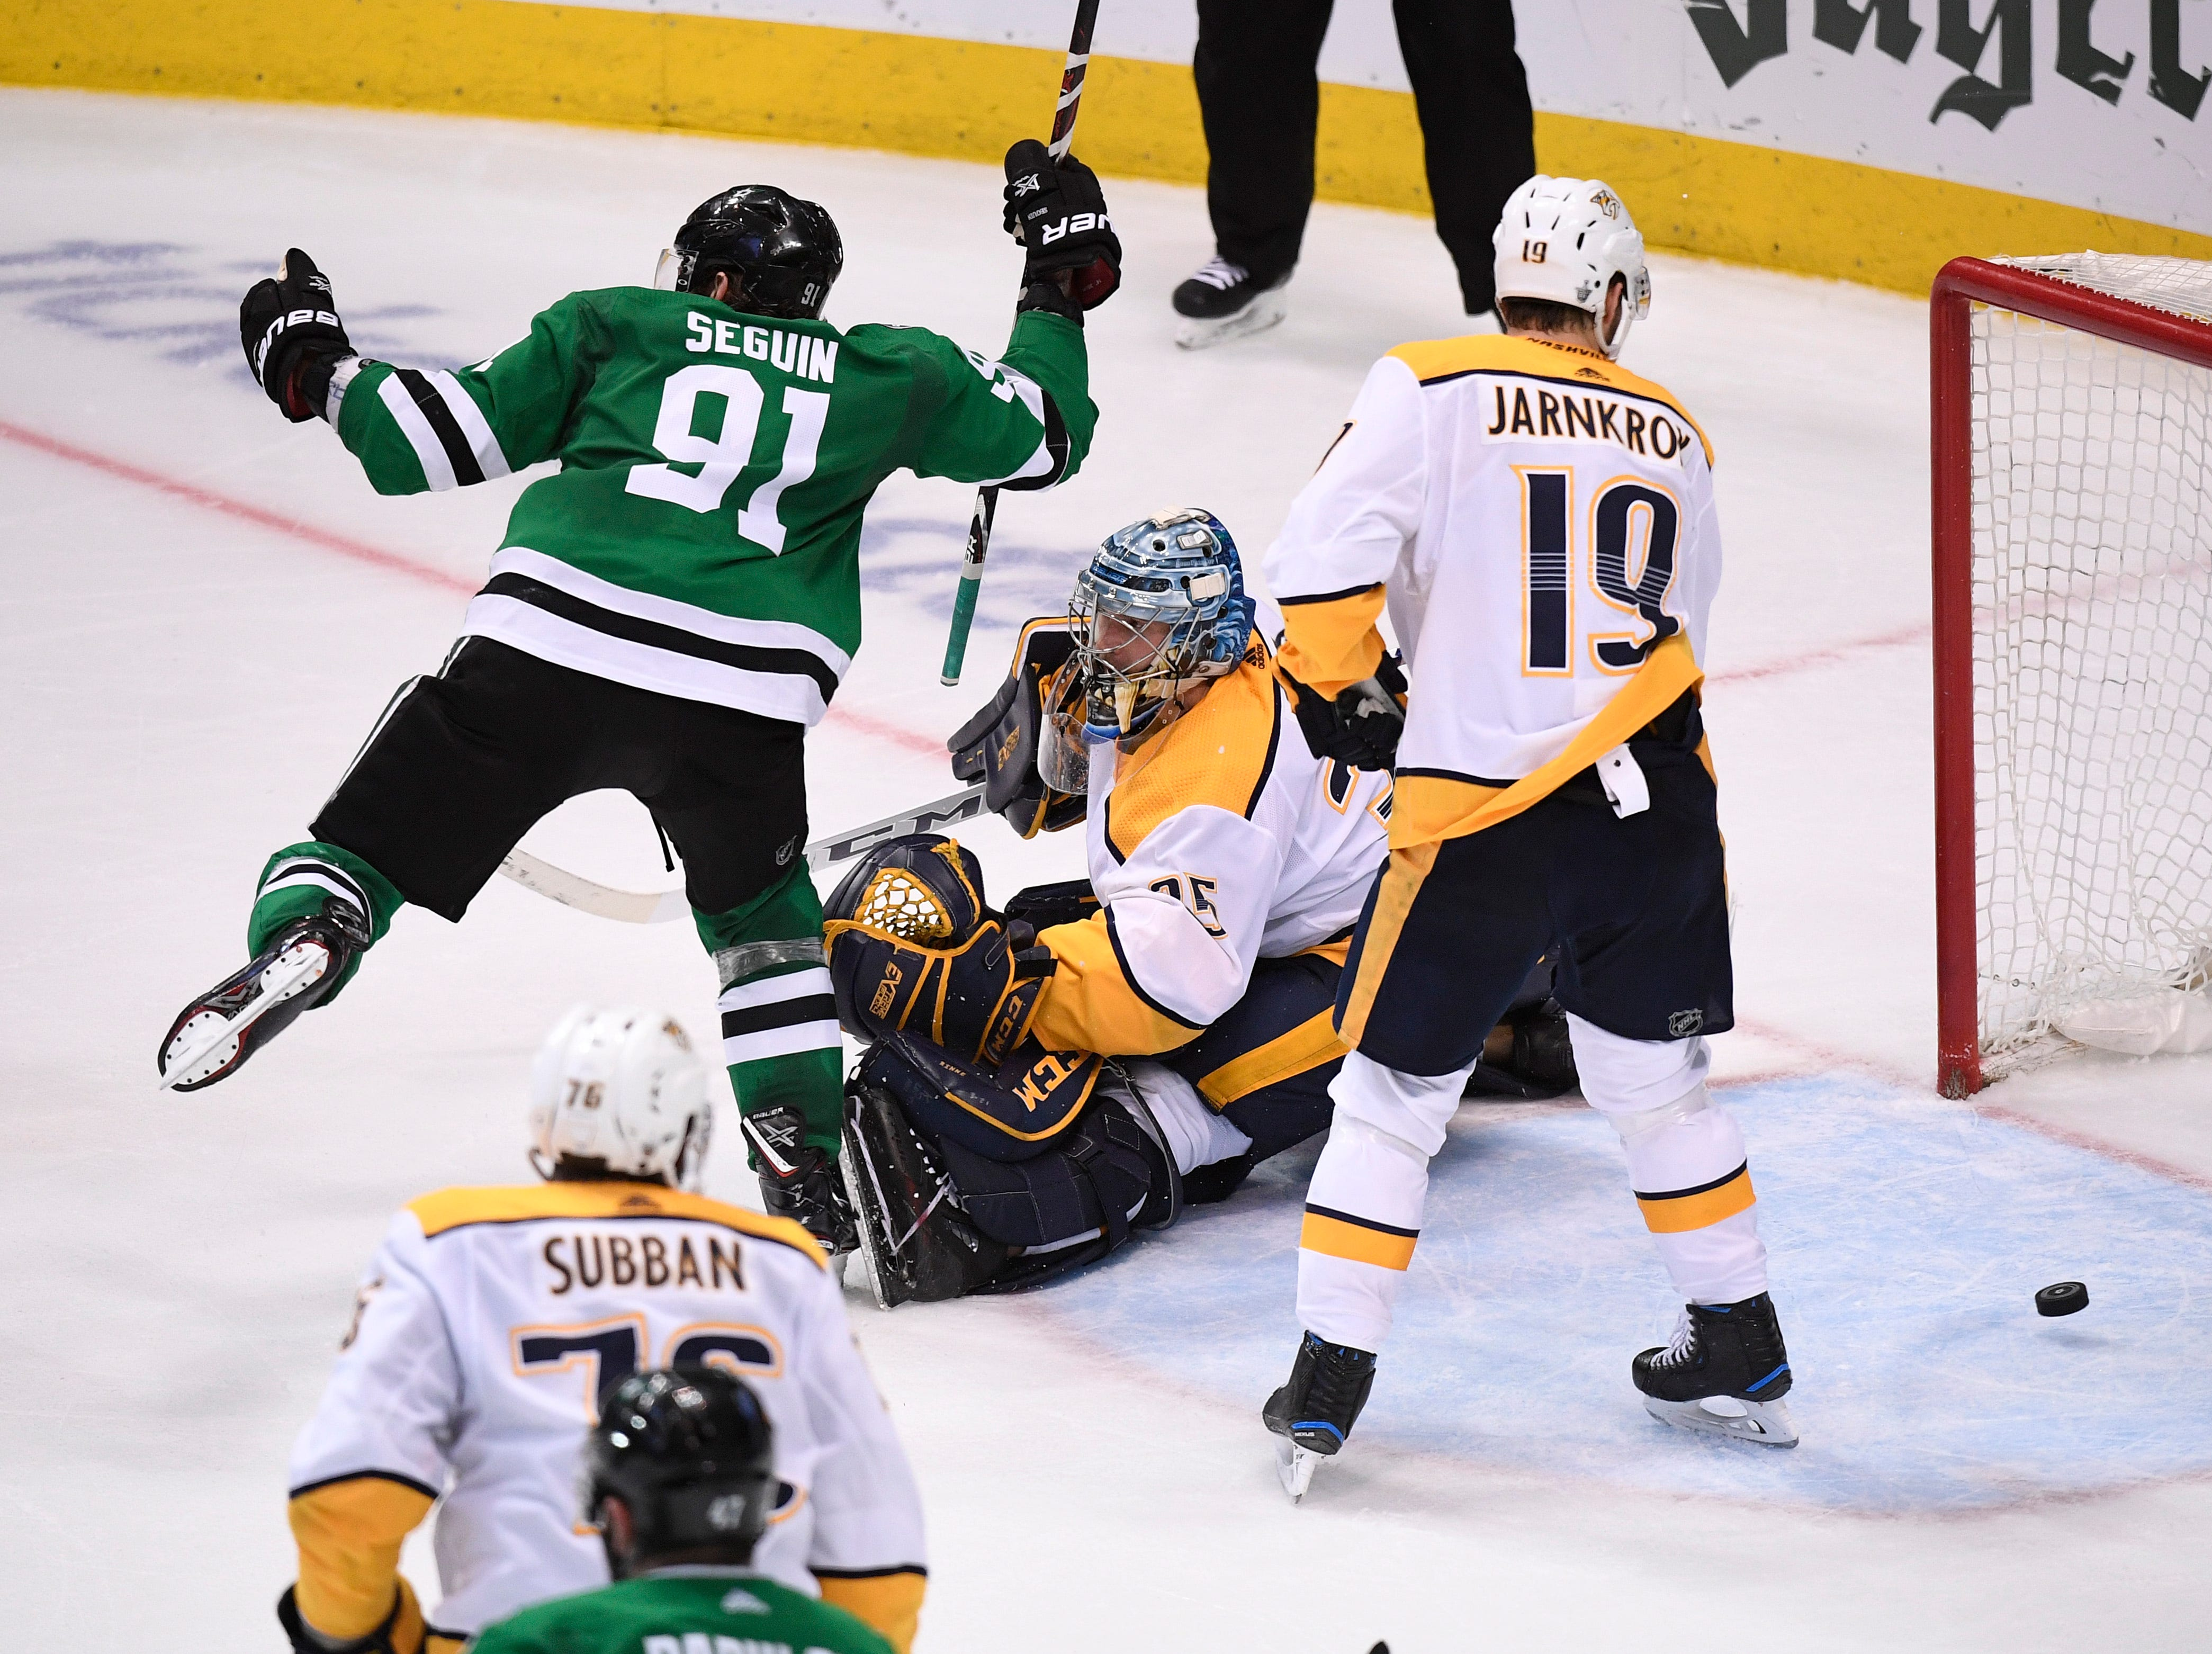 The puck bounces out of the net behind Nashville Predators goaltender Pekka Rinne (35) after the game-winning overtime goal by Dallas Stars defenseman John Klingberg (3) ending the divisional semifinal series at the American Airlines Center in Dallas, Texas, Monday, April 22, 2019.